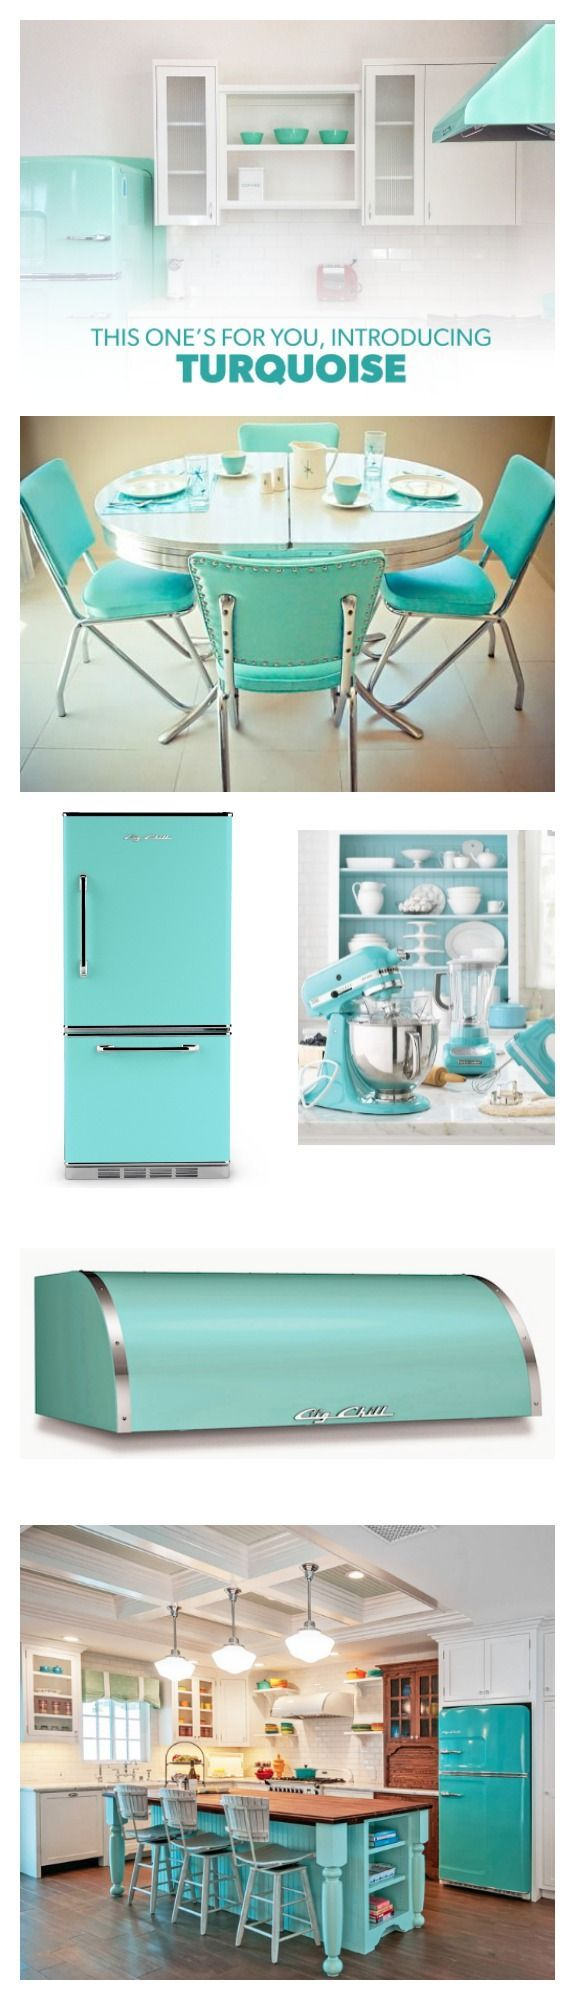 Big Chill offers turquoise as a standard color. This fabulous shade flatters any kitchen and looks invitingly chic. Explore the bright and inspiring details possible with this hue! #BigChill #Retro